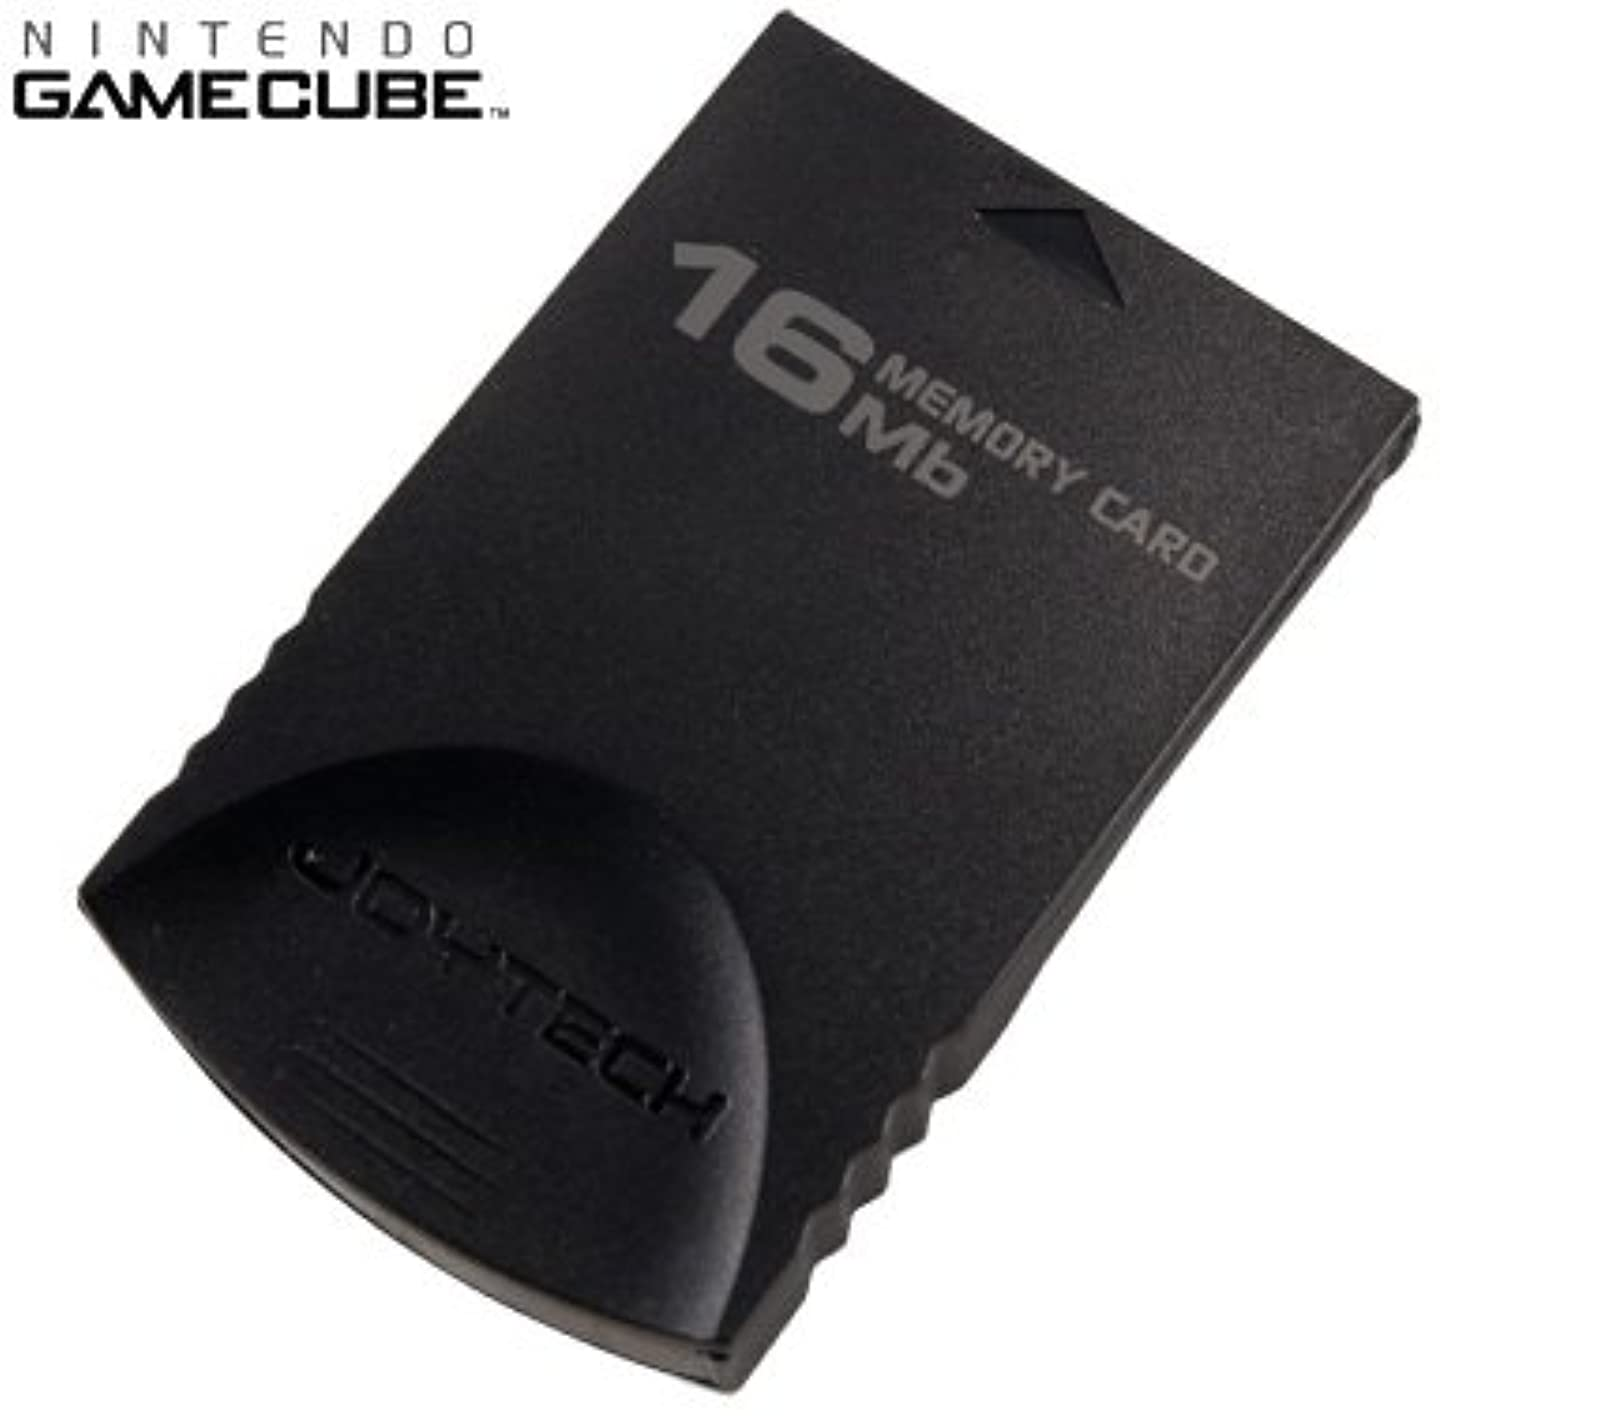 16MB Memory Card For GameCube Expansion JS-811B